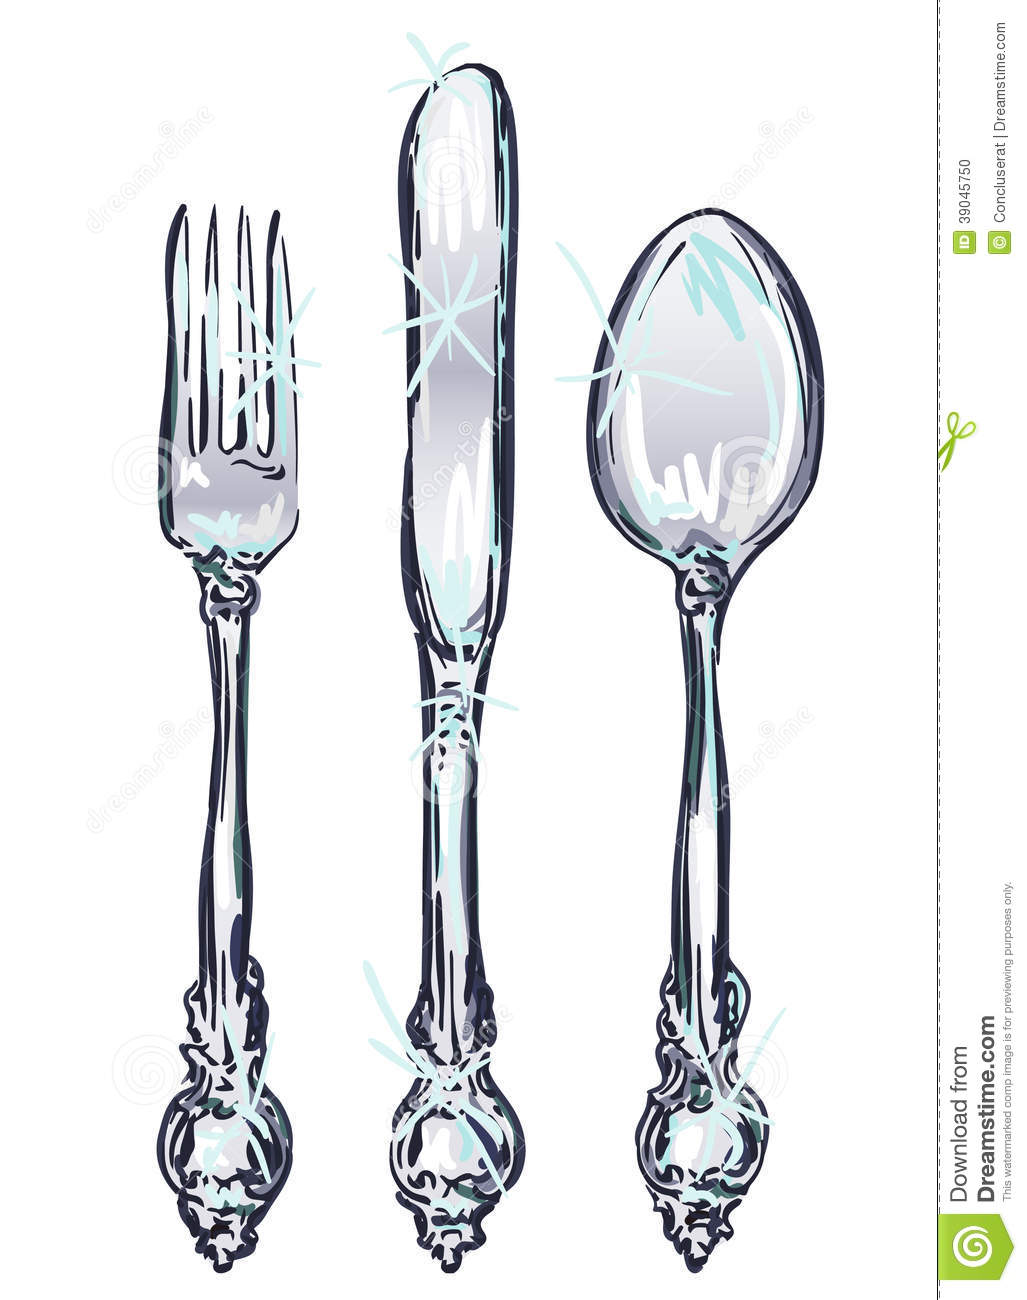 Cutlery clipart vintage Silverware%20clipart Clipart Images Free Clipart